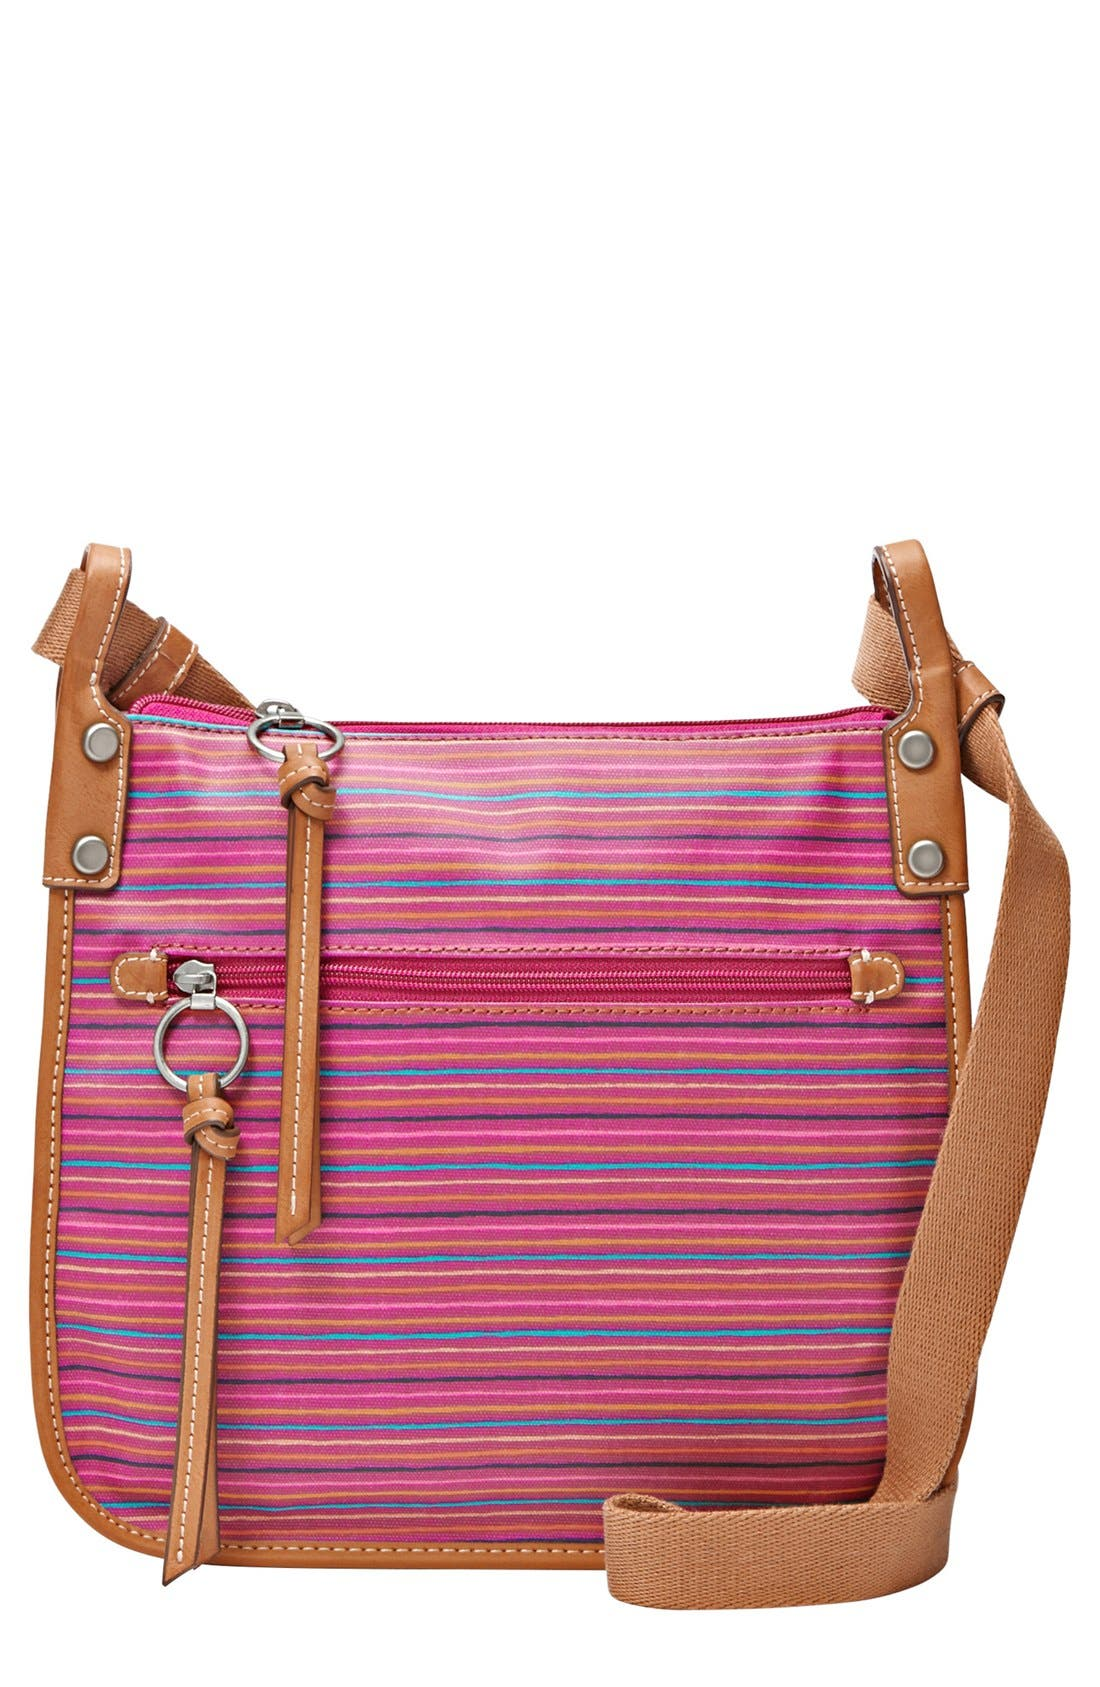 Alternate Image 1 Selected - Fossil 'Key-Per' Crossbody Bag